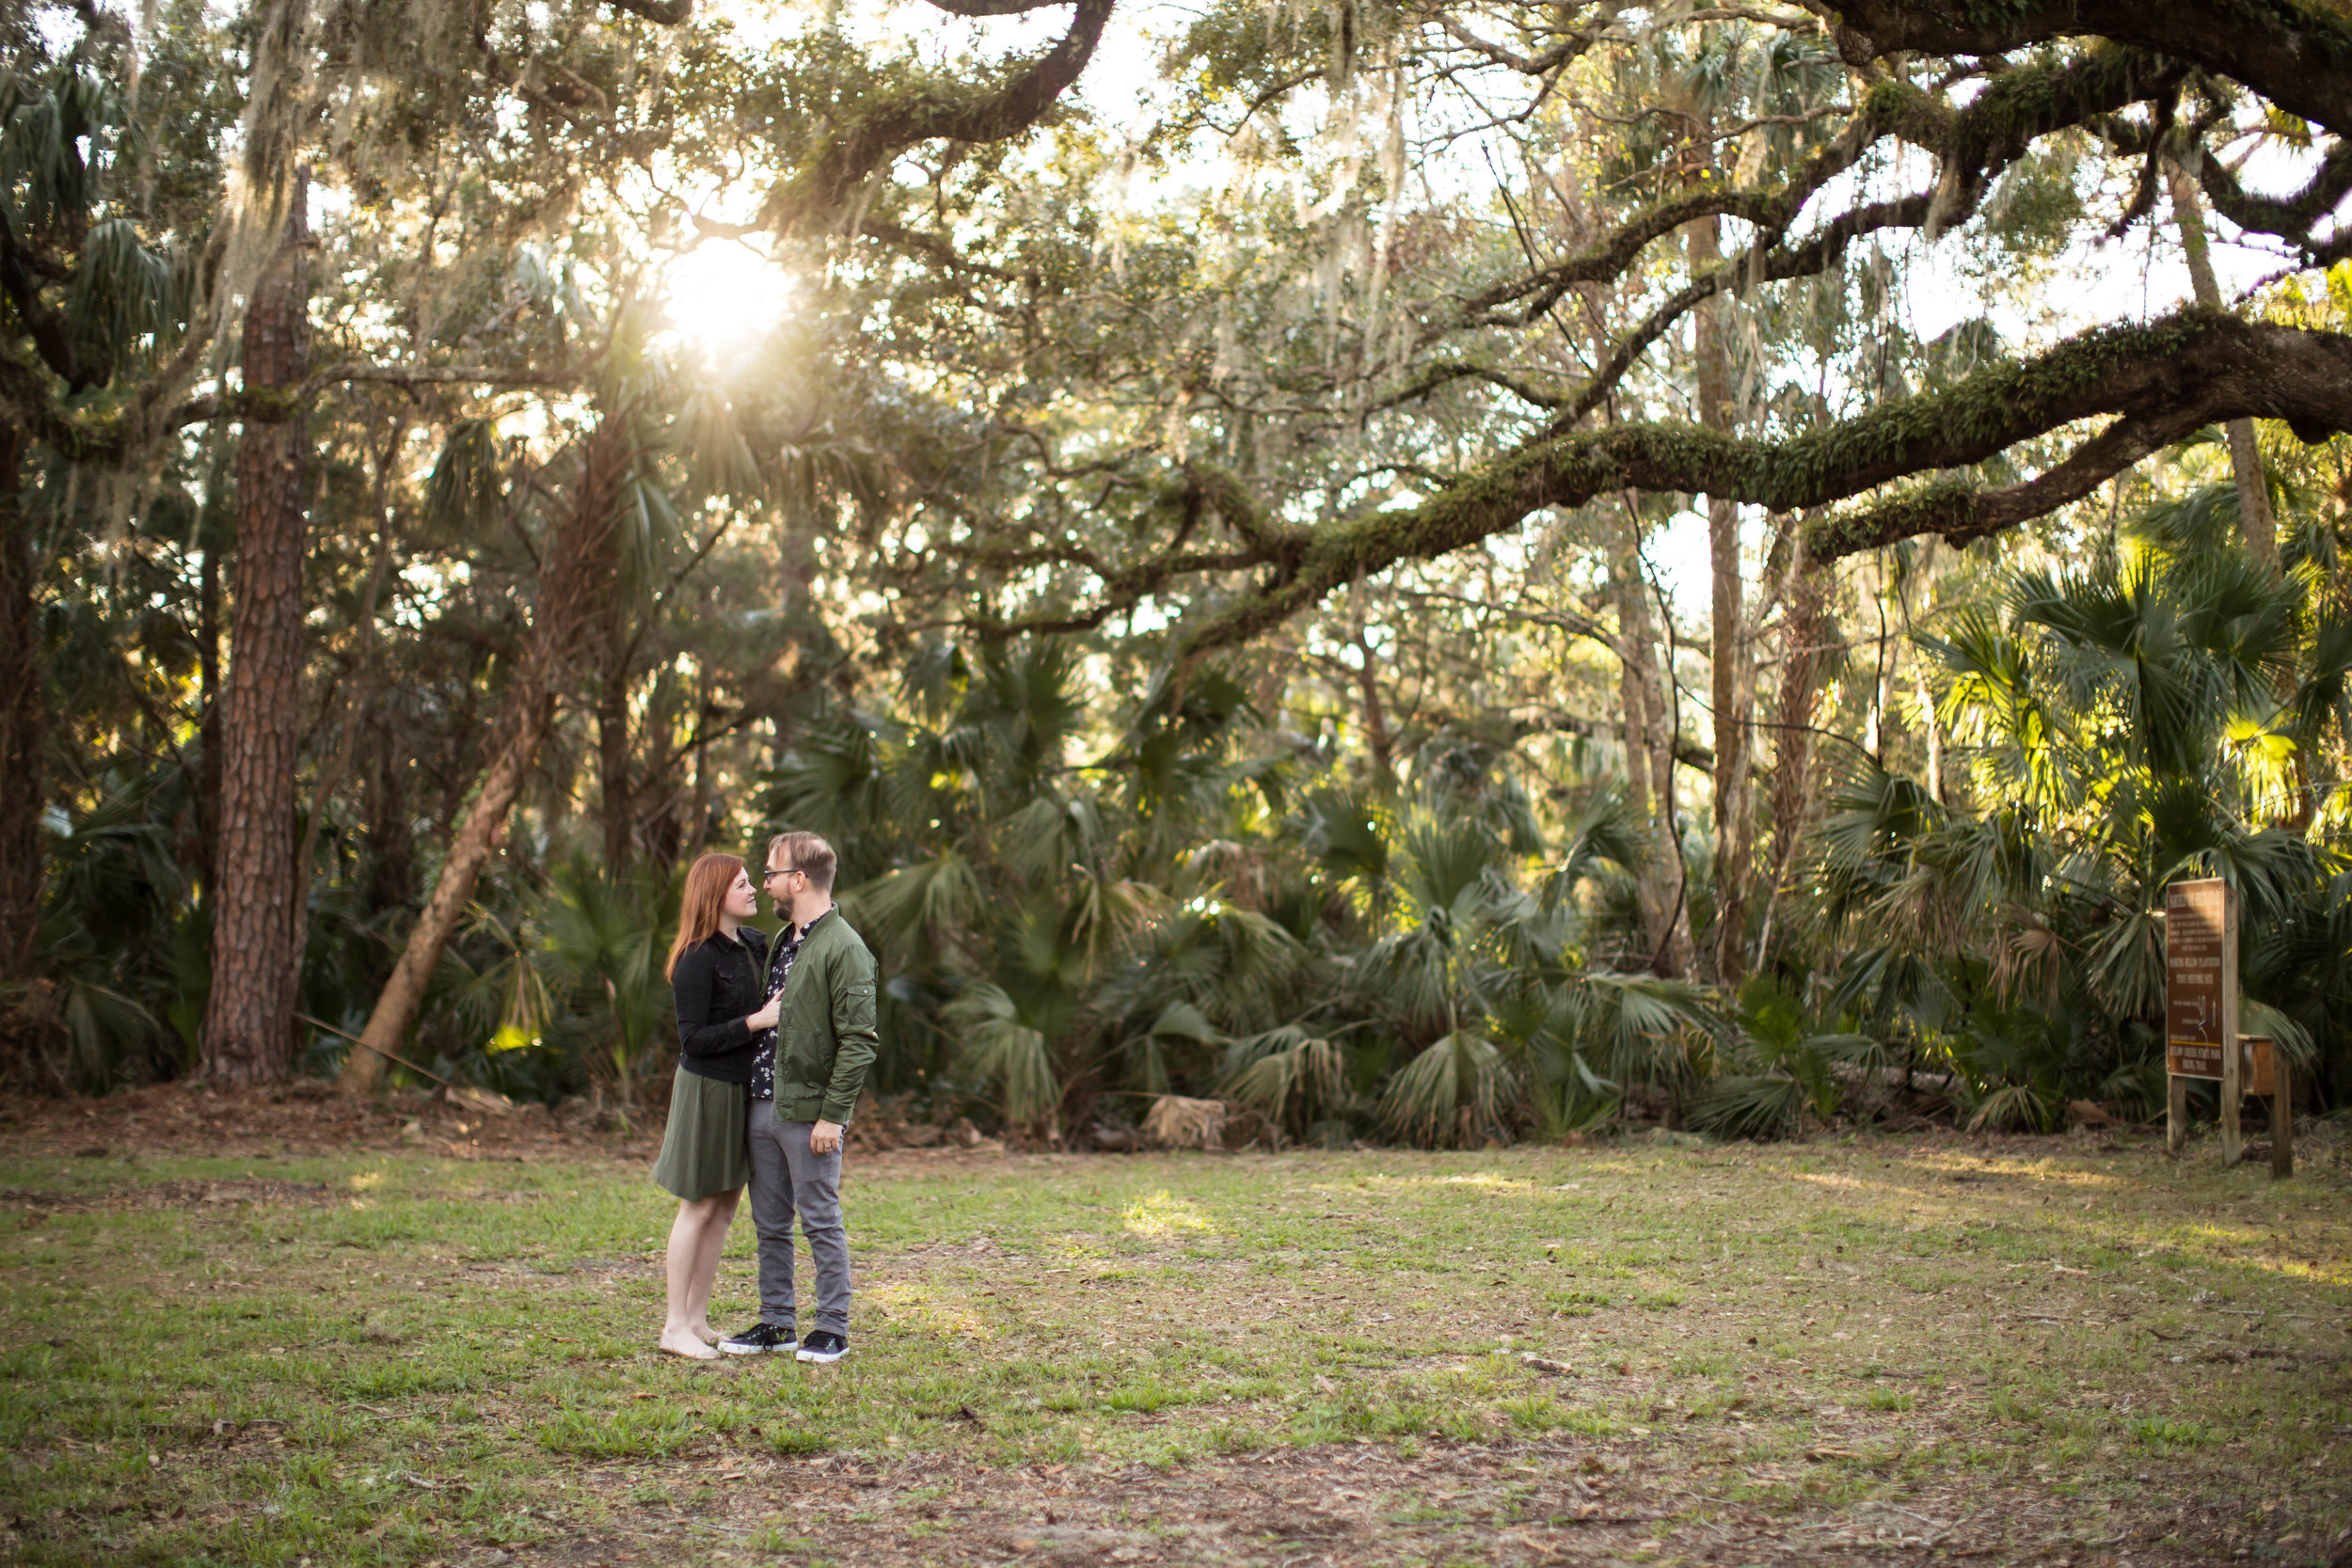 Marble_Falls_Anniversary_Photographer_Jenna_Petty_Ormond_Beach_Florida_01.jpg